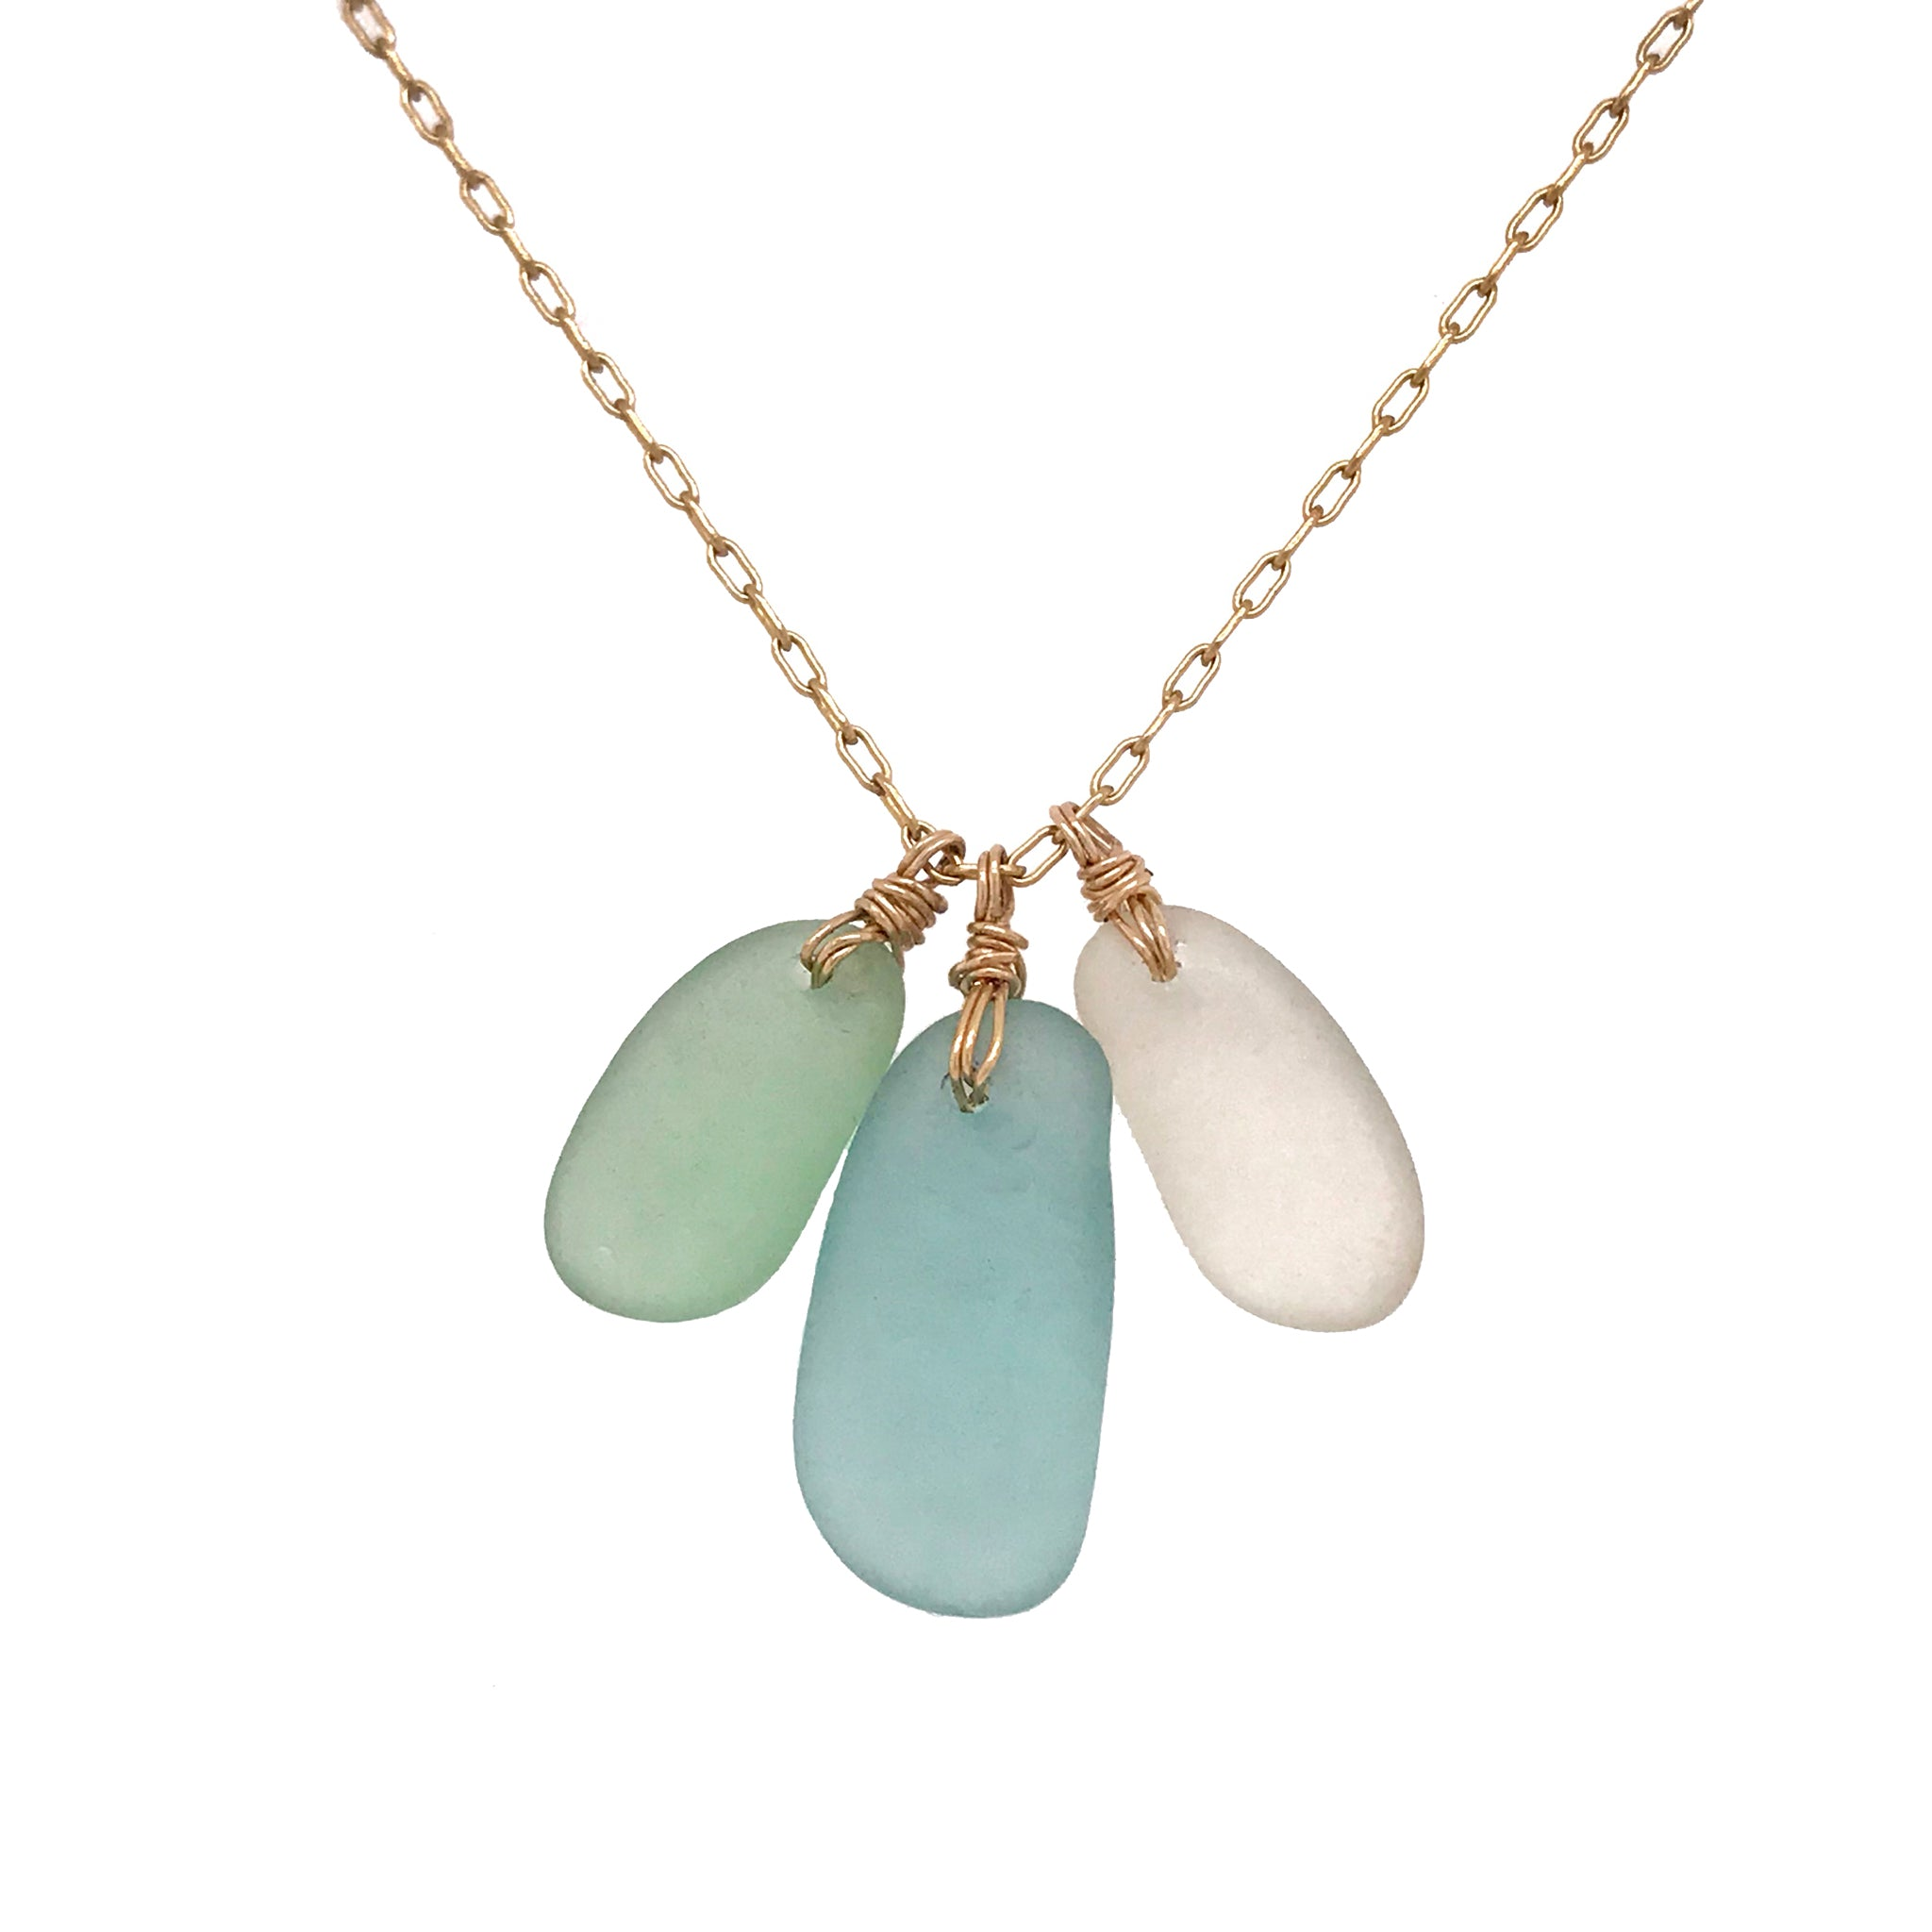 unique gifts for women seaglass cluster necklace kriket broadhurst jewelry